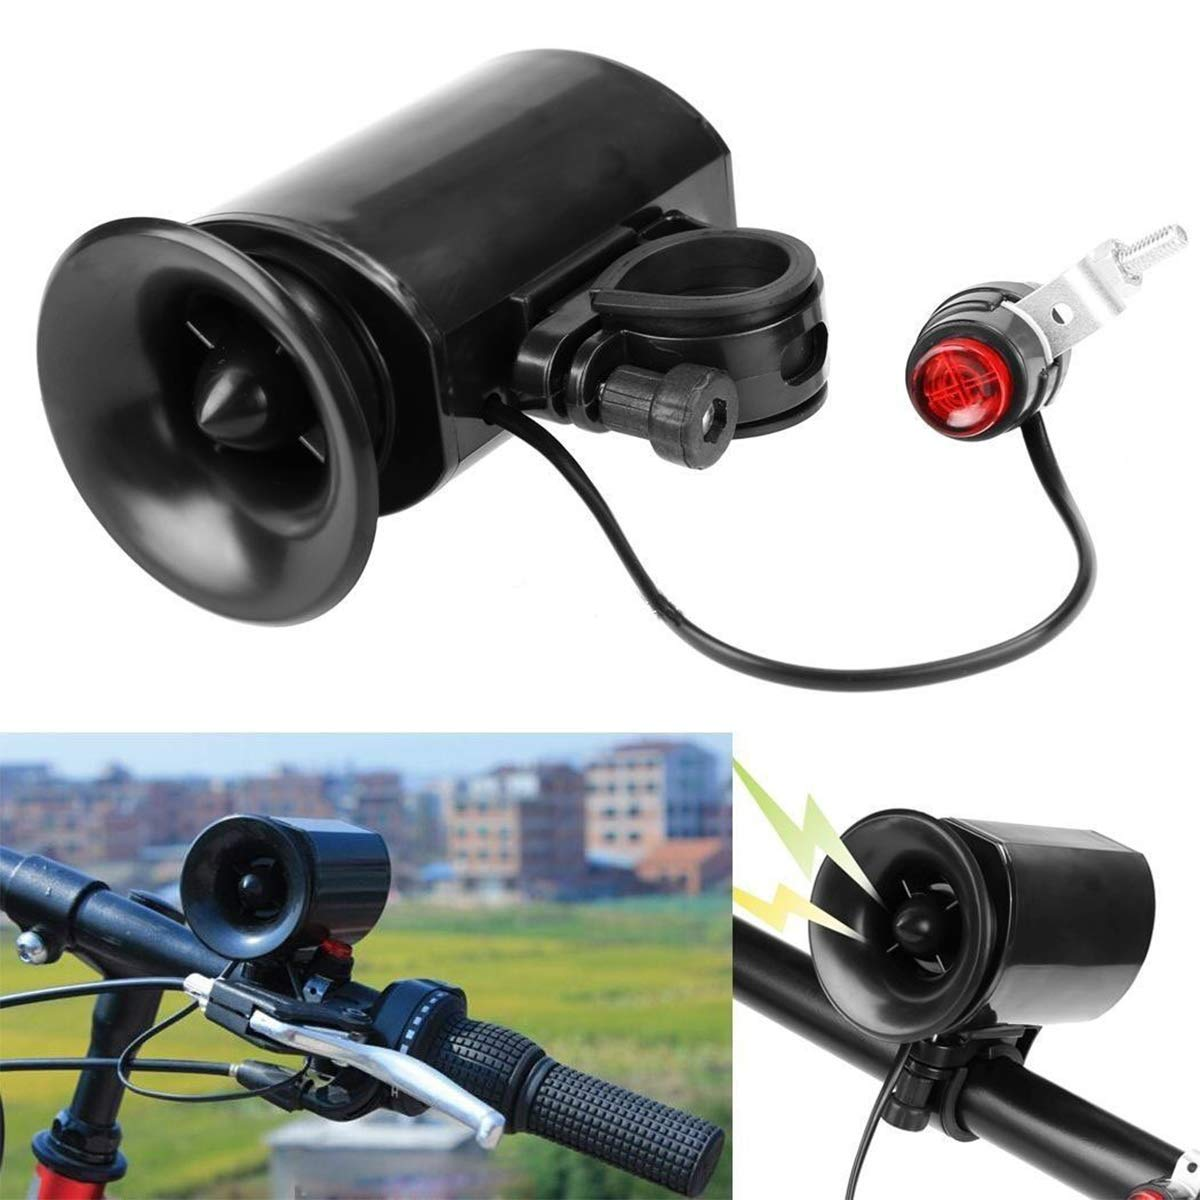 COOLOH Yannuo Trading Waterproof Bike Bicycle Cycling Ultra-Loud Electronic Bell Horn Alarm, Bike Siren Bell 6 Sounds Super Loud Electronic Bicycle Bell Bike Horn Siren Ring Alarm Speaker